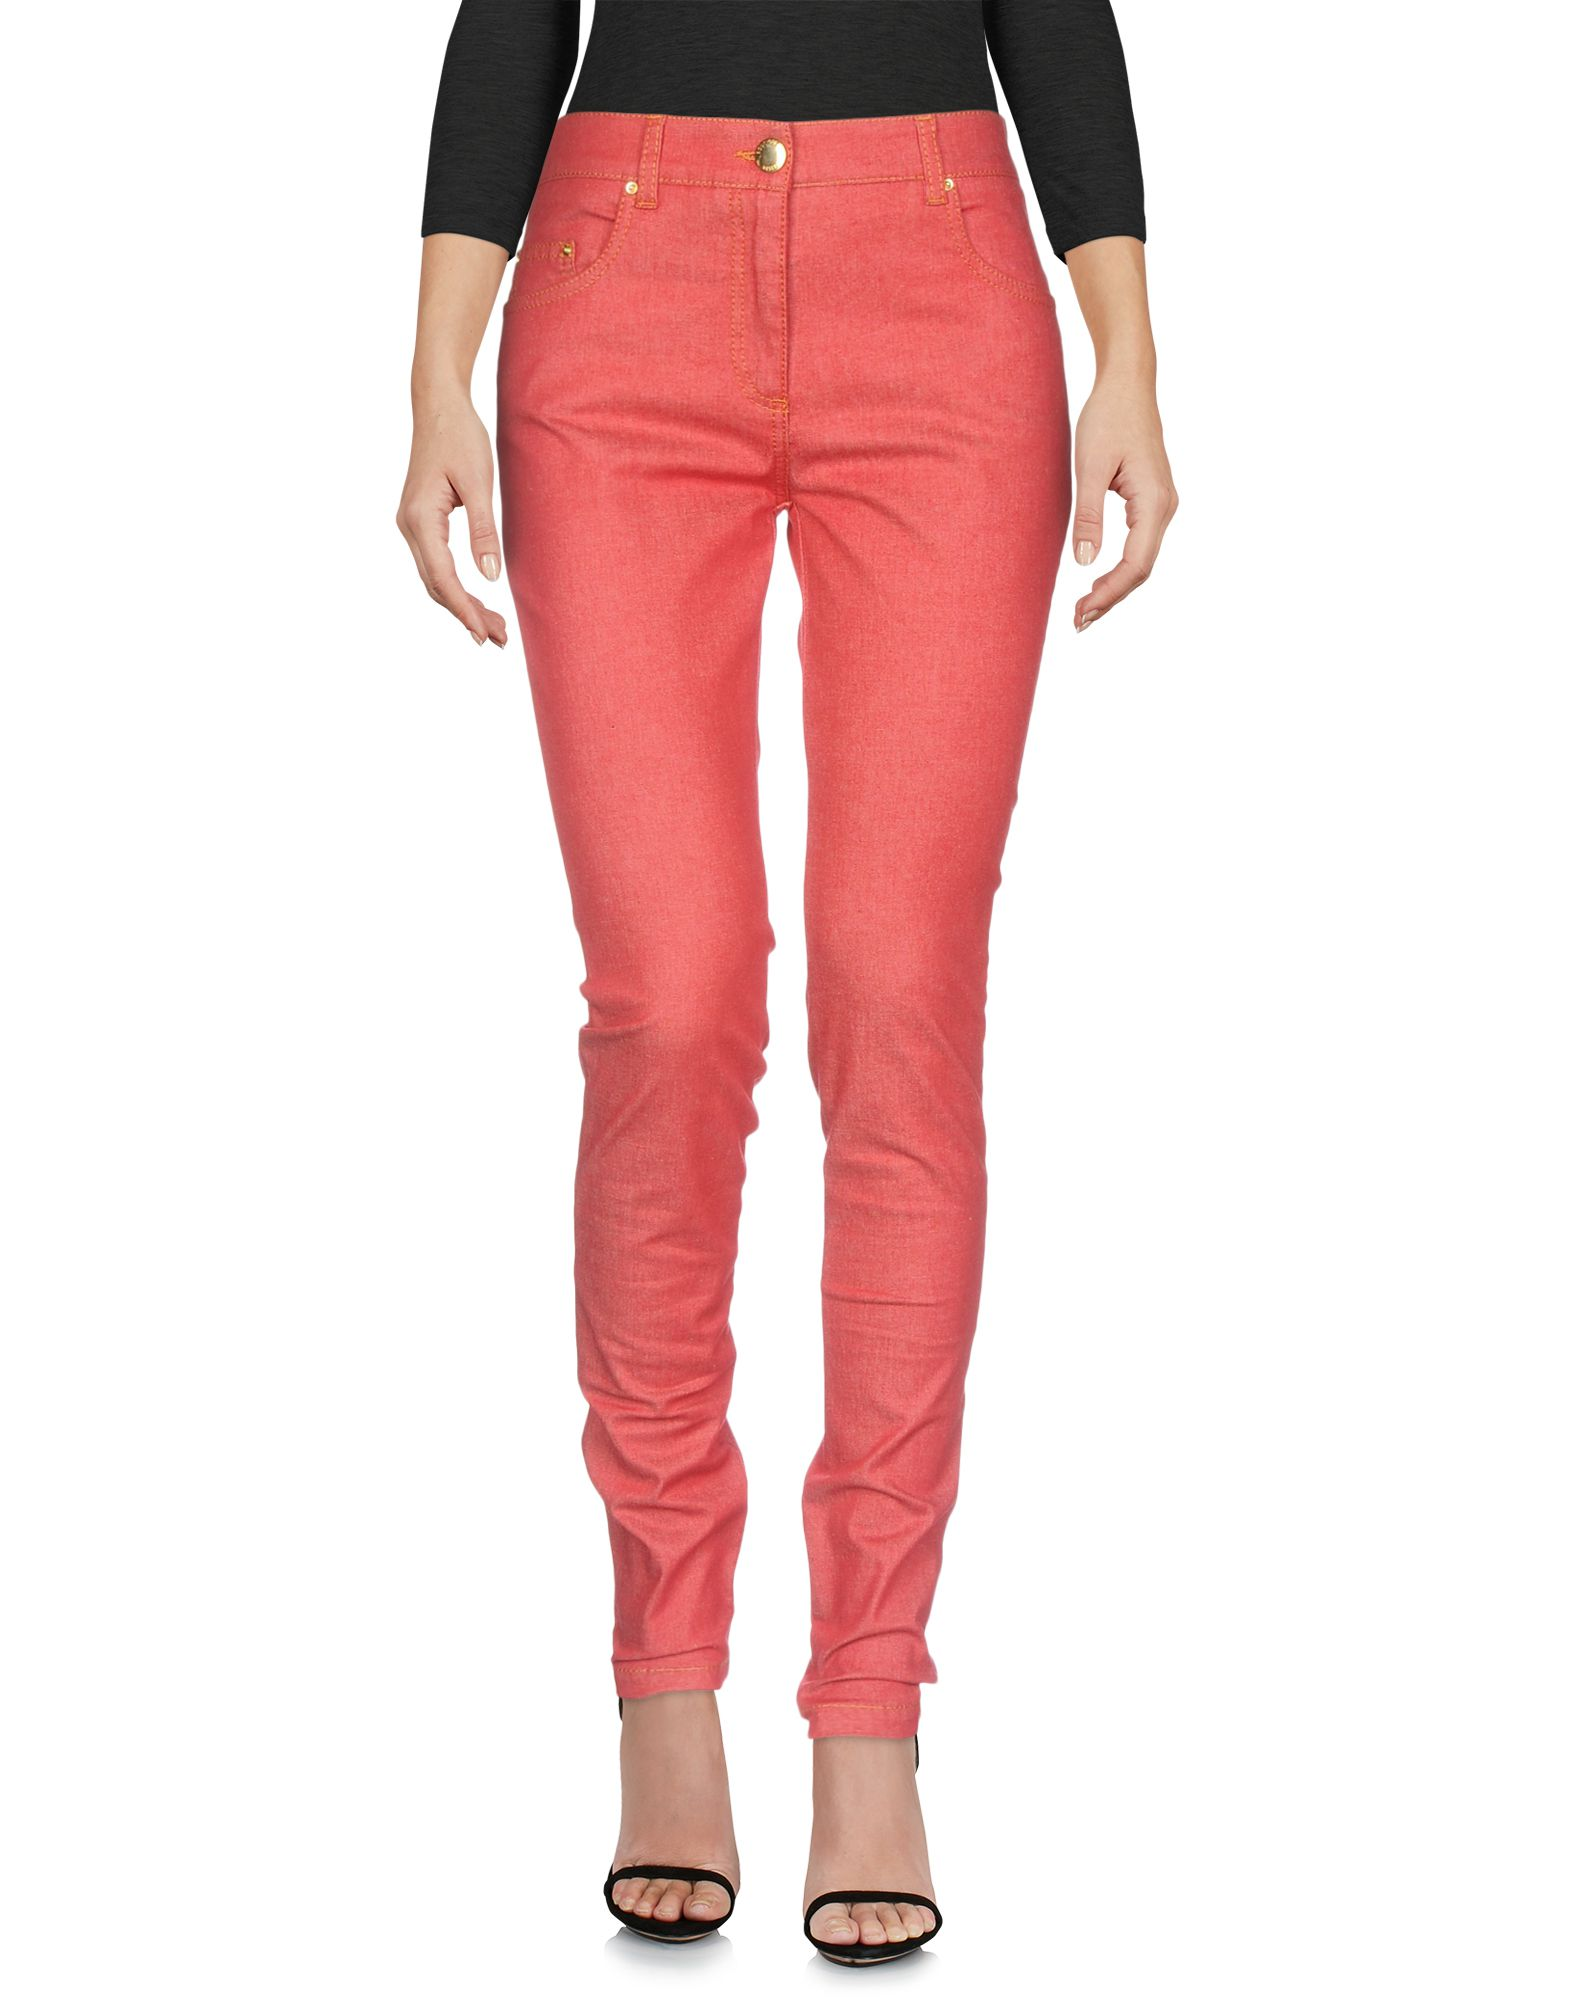 BOUTIQUE MOSCHINO DENIM PANTS, RED